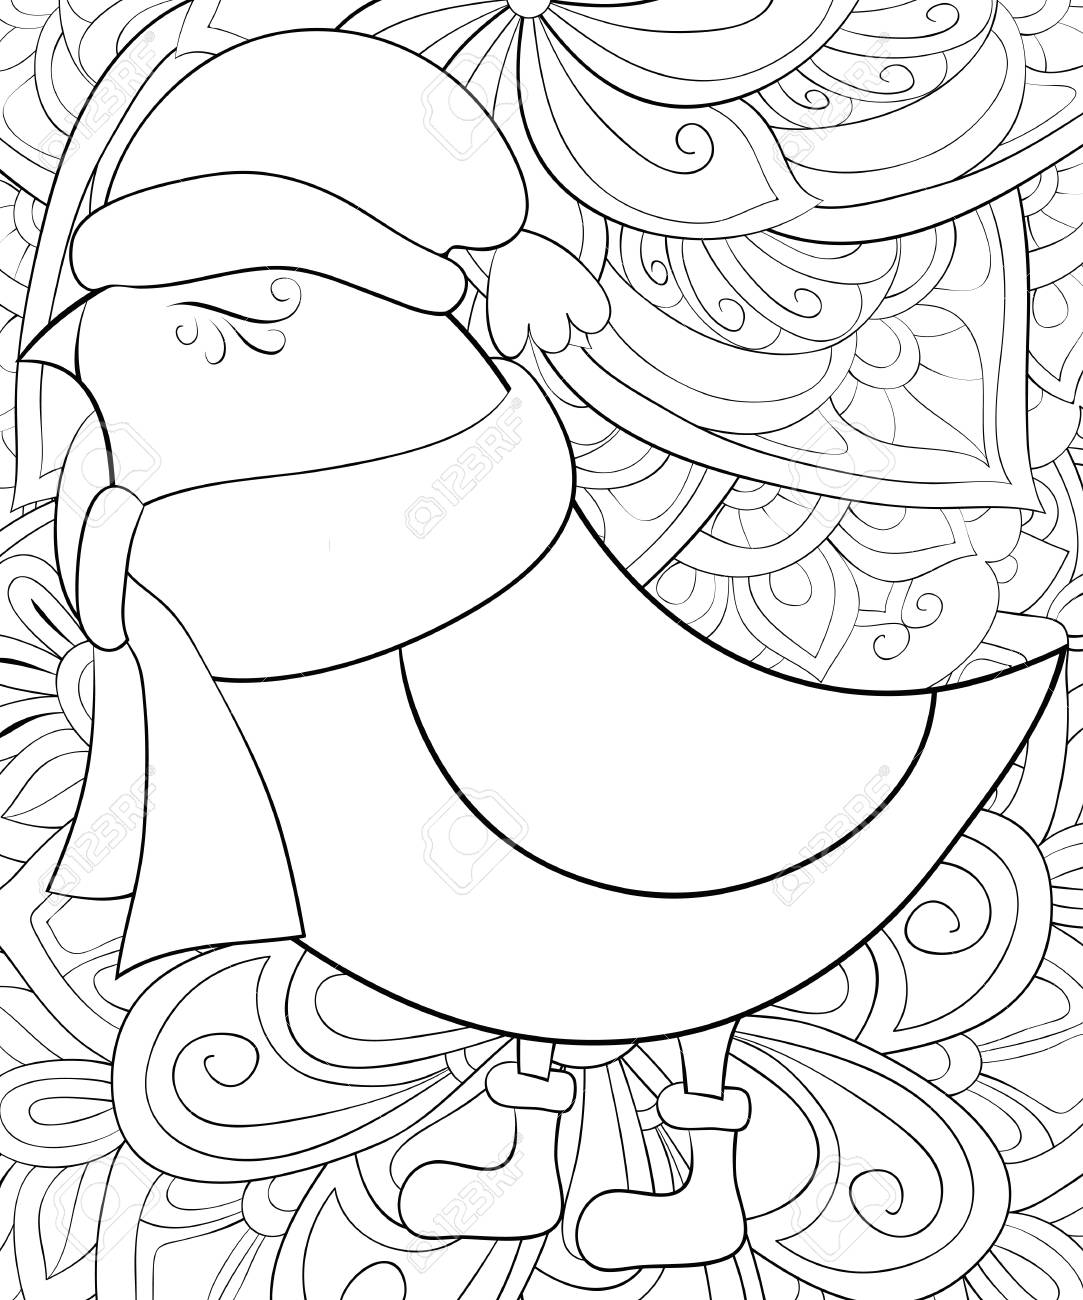 Christmas Boots Drawing.A Cute Bird Wearing A Christmas Cap Scarf And Boots On The